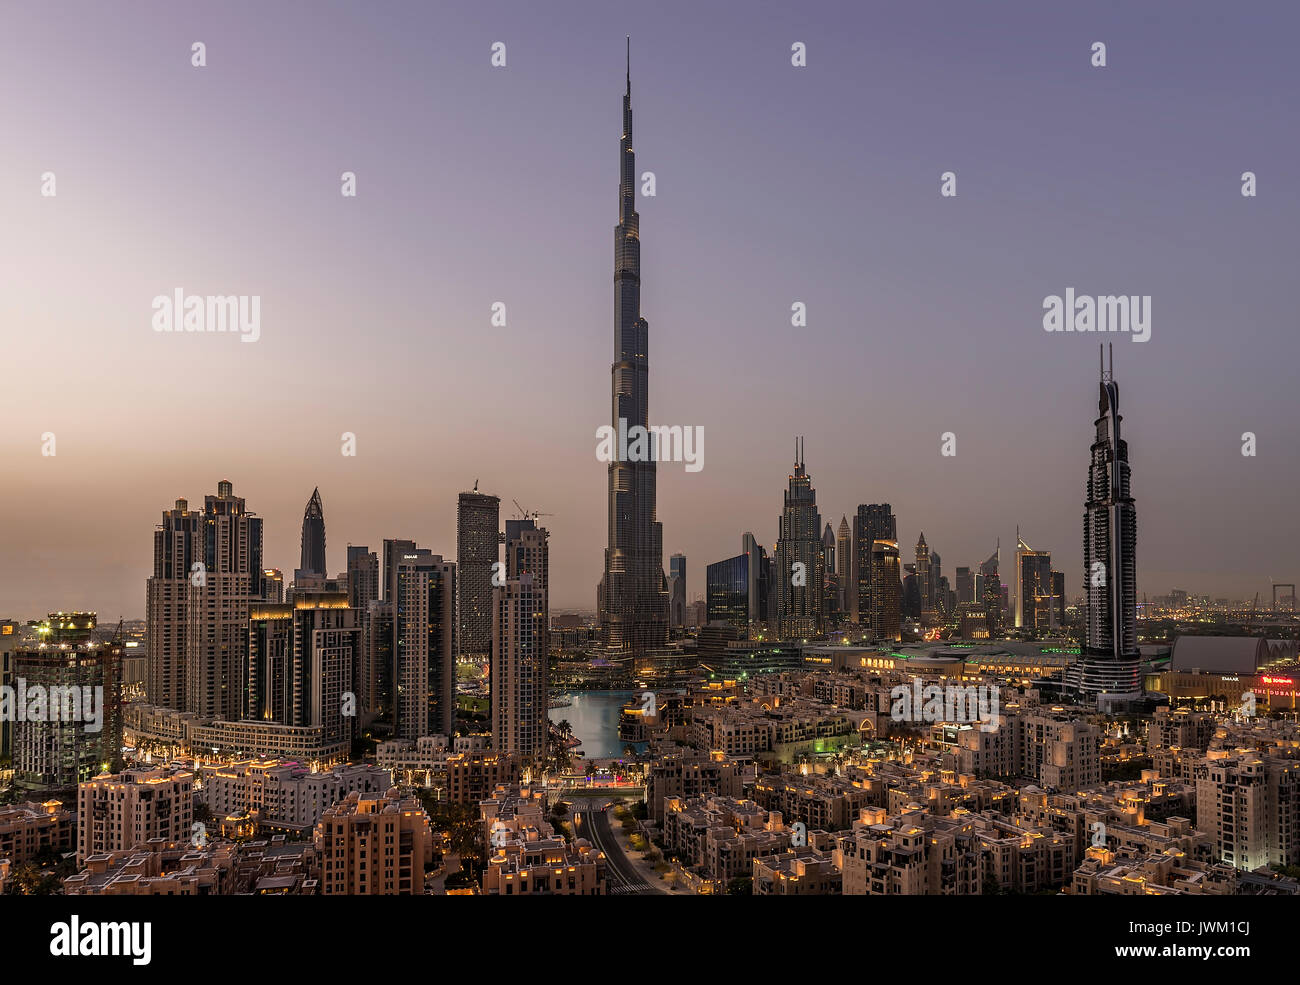 Dubai Downtown - Stock Image